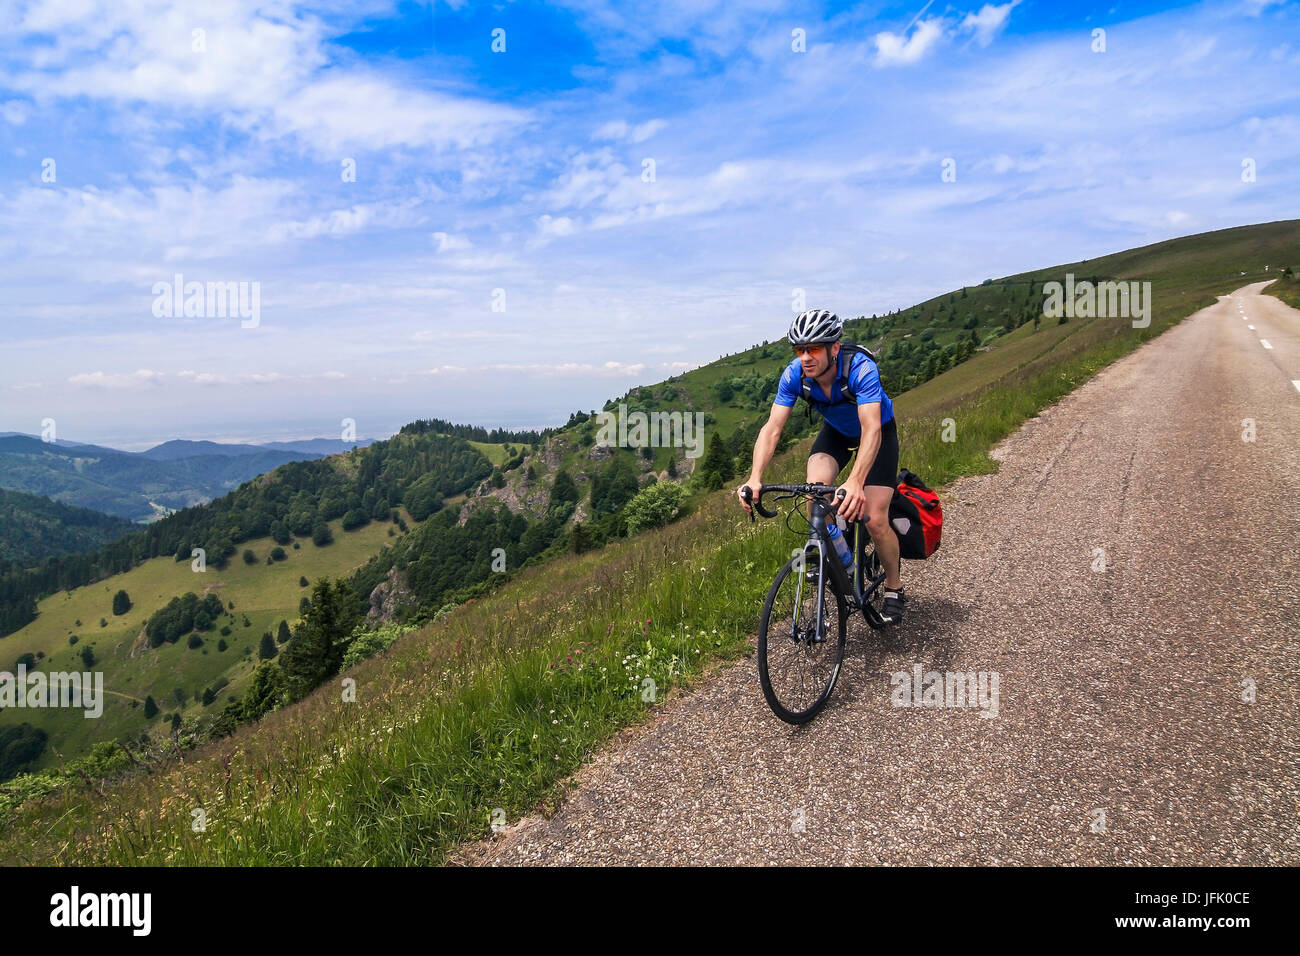 Mature man riding bike on hilly areas - Stock Image